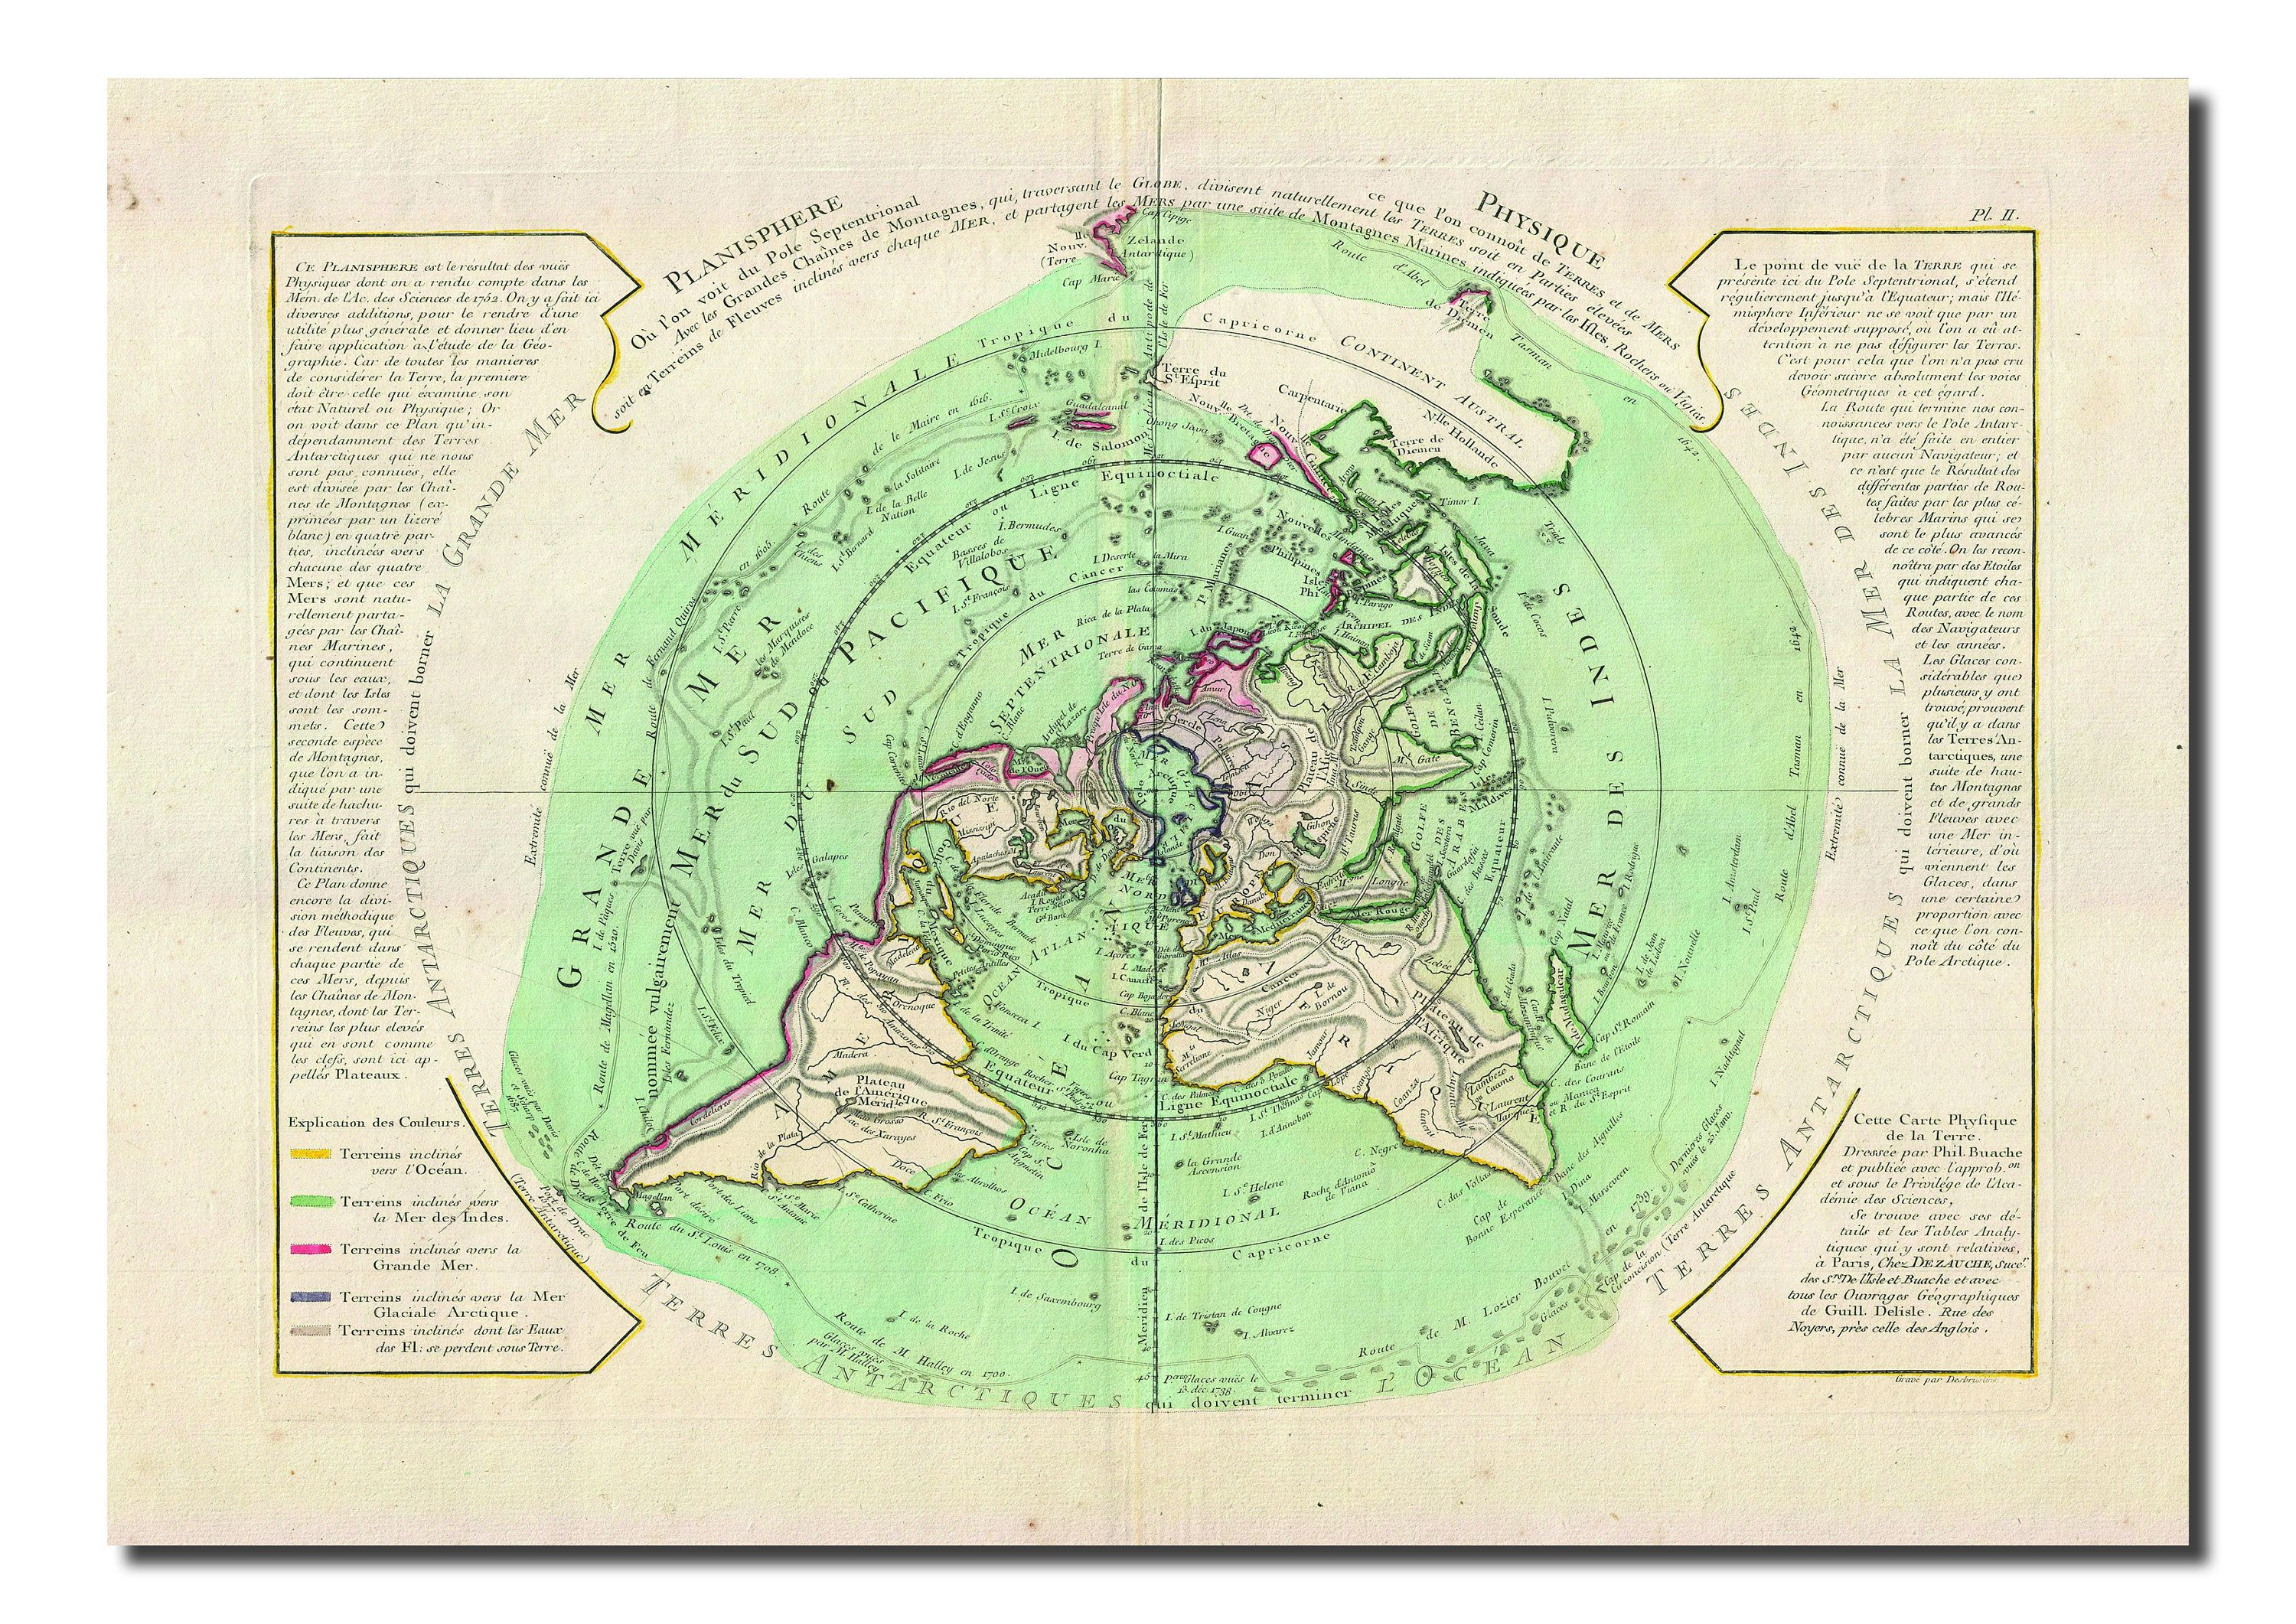 1 Flat Earth Maps SET OF 2 MAPS- Flat Earth Map 24 x 36 Gleasons New Standard Map Of The World 24 x 18 Map of the Square and Stationary Earth by Orlando Ferguson